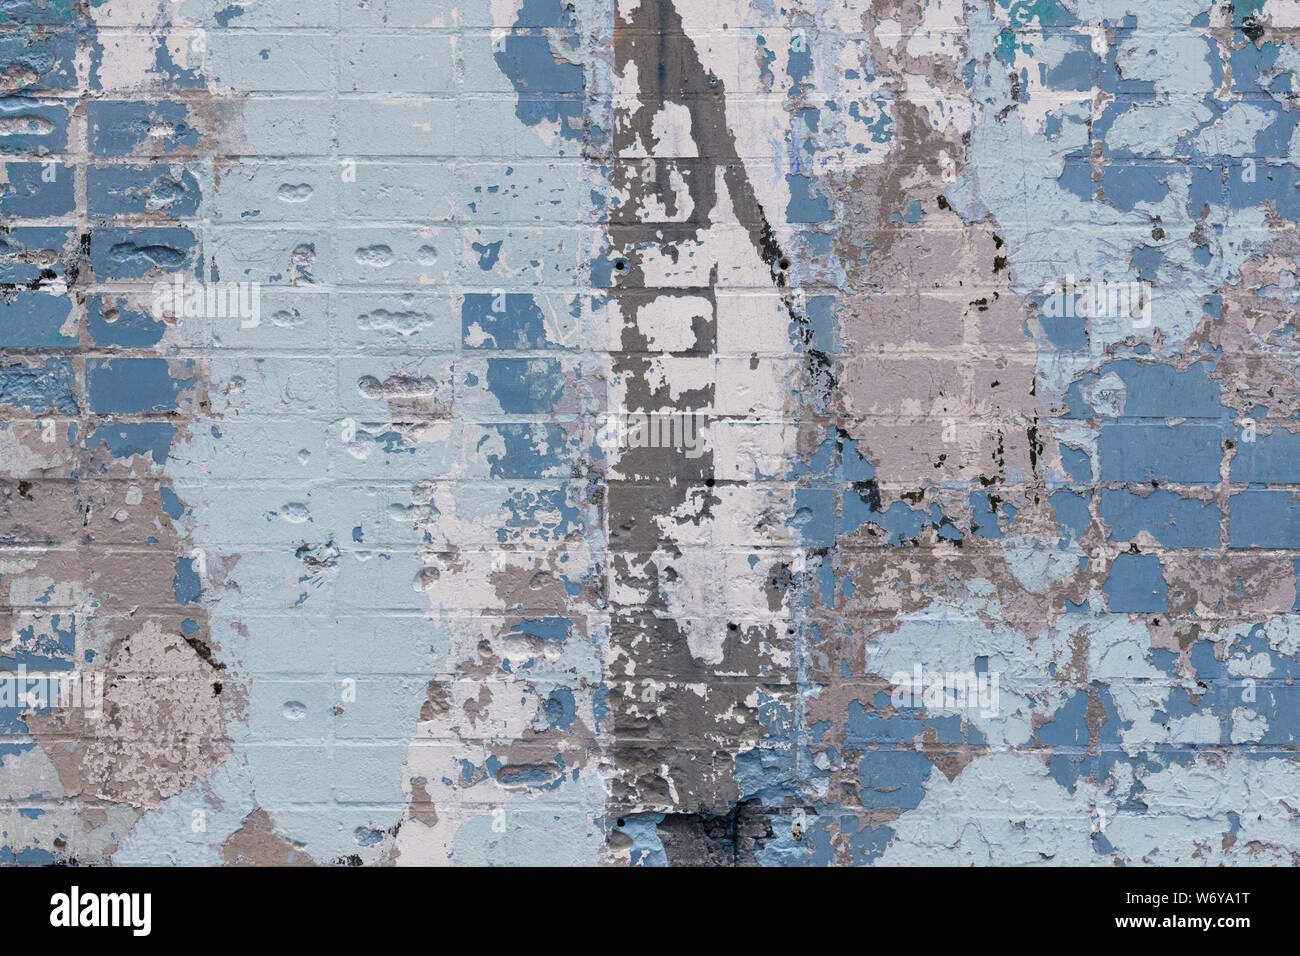 Abstract background of an old brick wall with expressive spots in gray and blue colors. Inimitable pattern Stock Photo